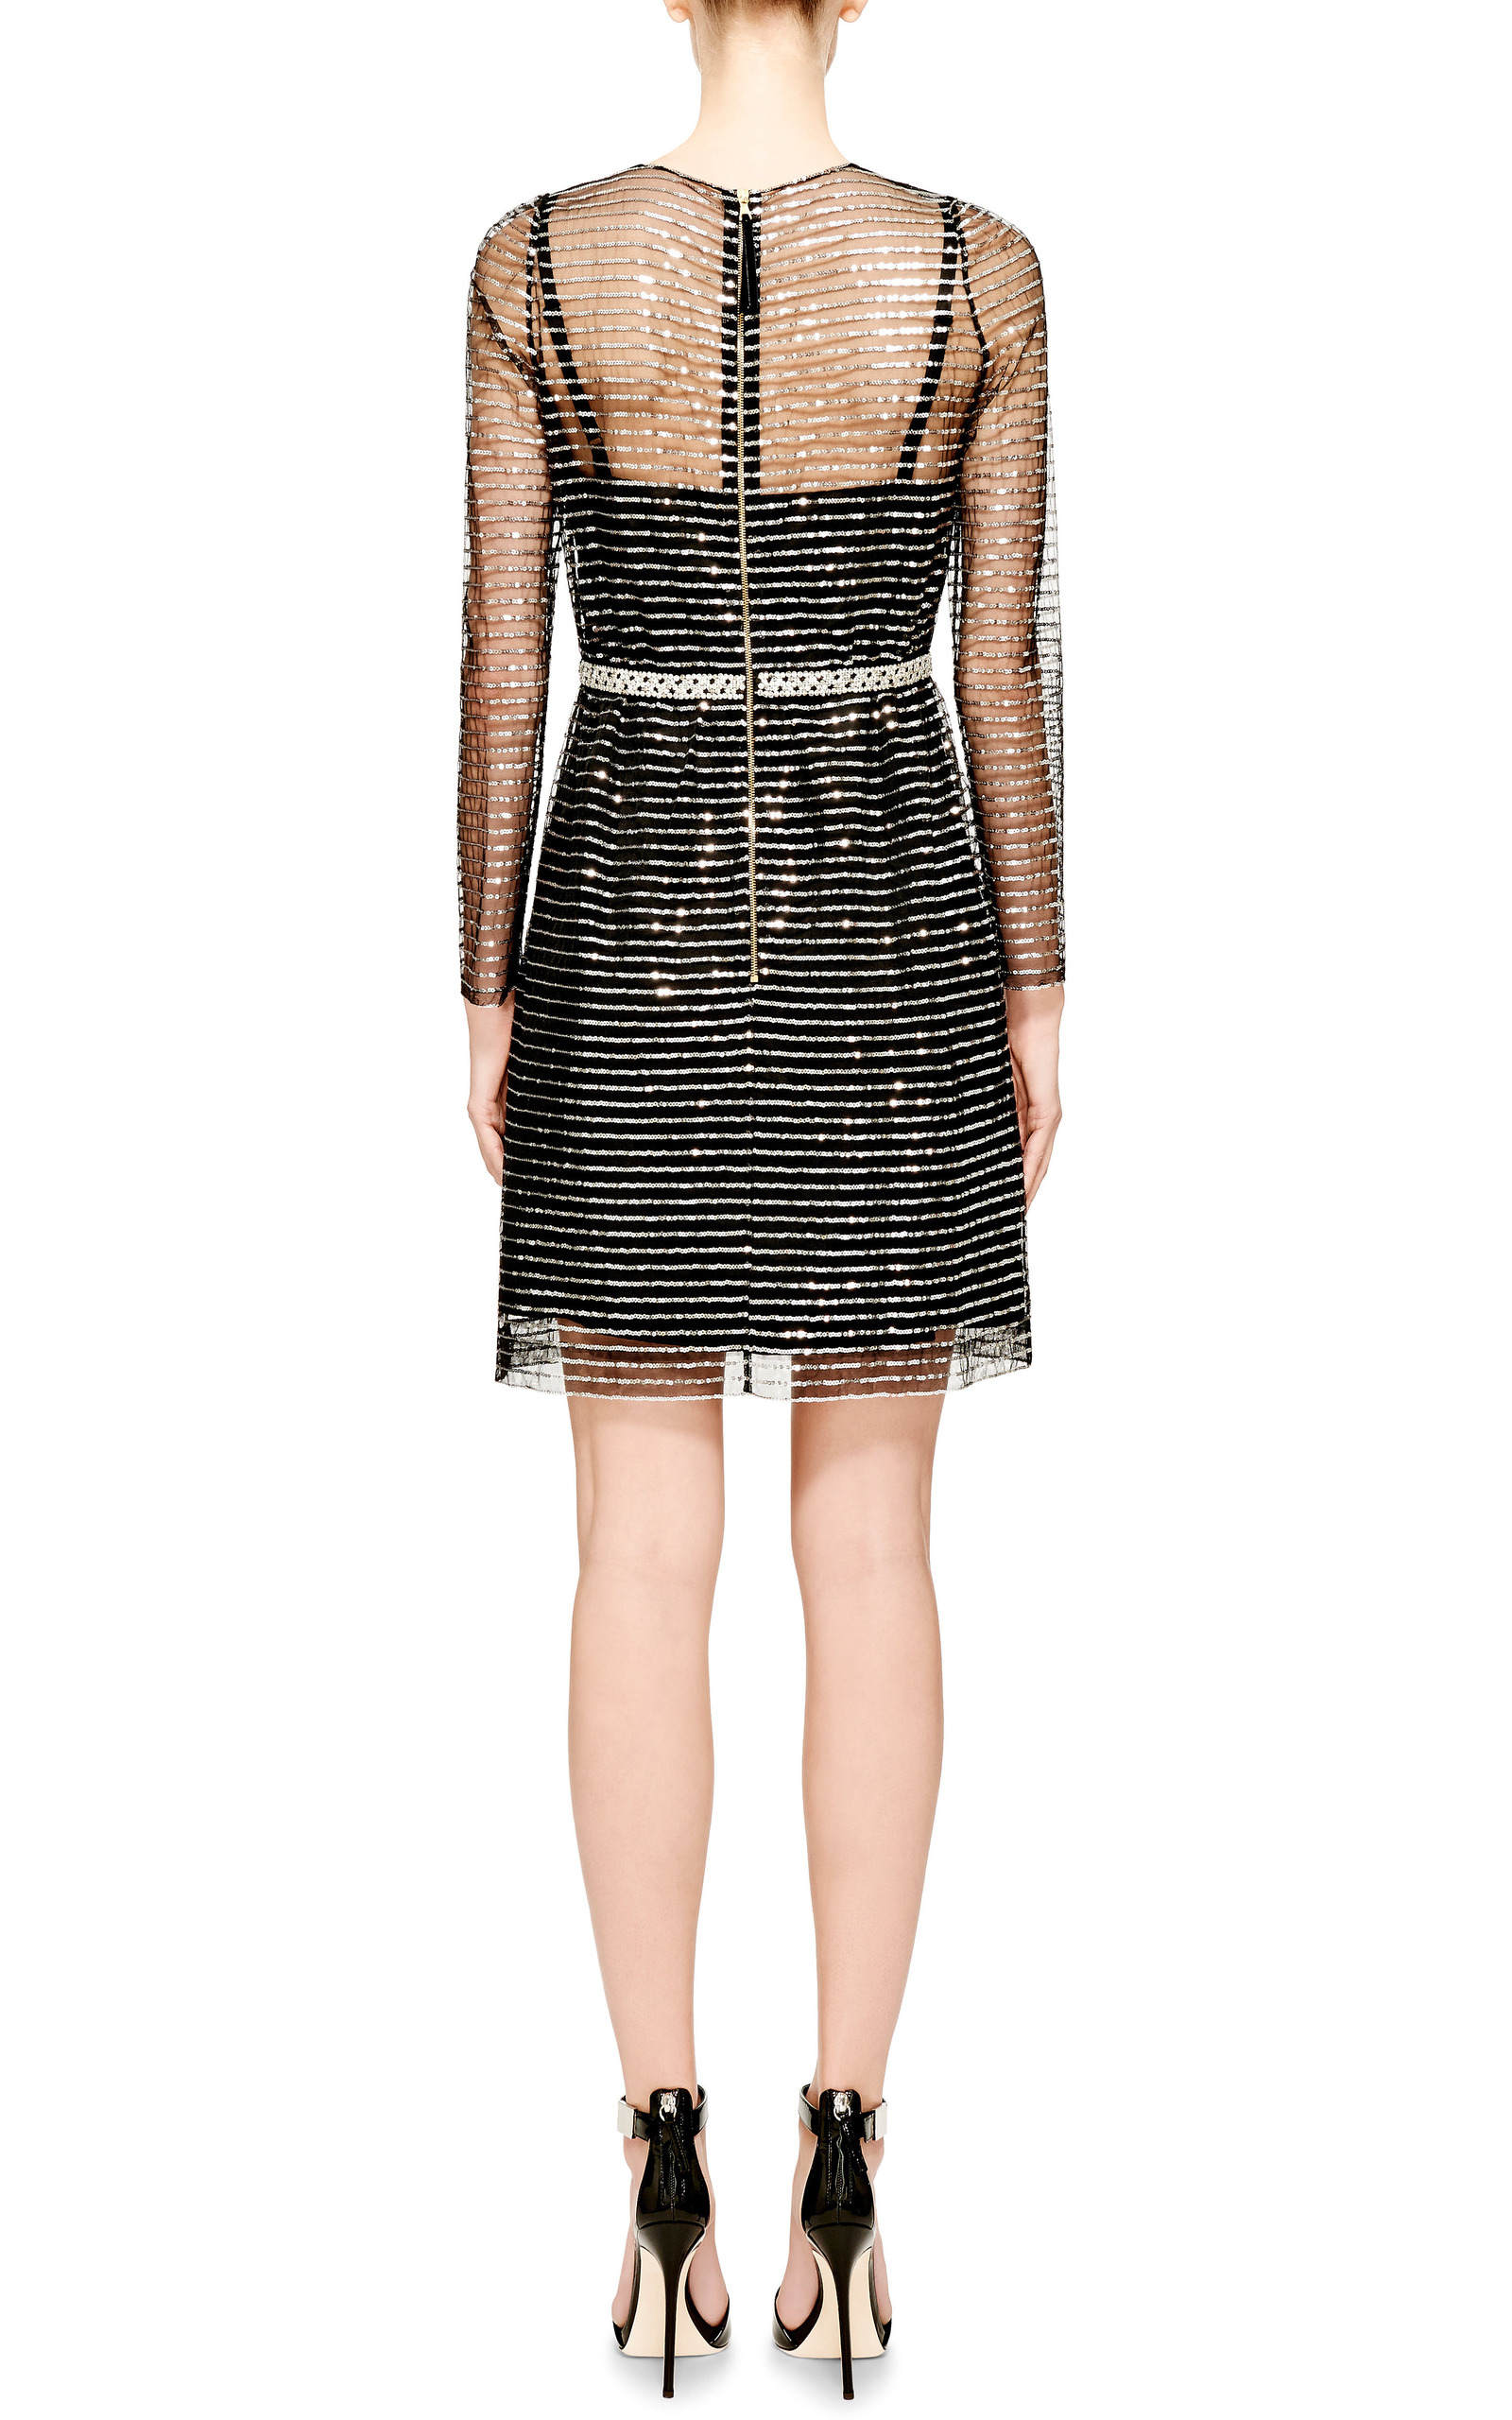 354863fc3aa Lyst - Marc Jacobs Embellished Tulle Dress in Metallic